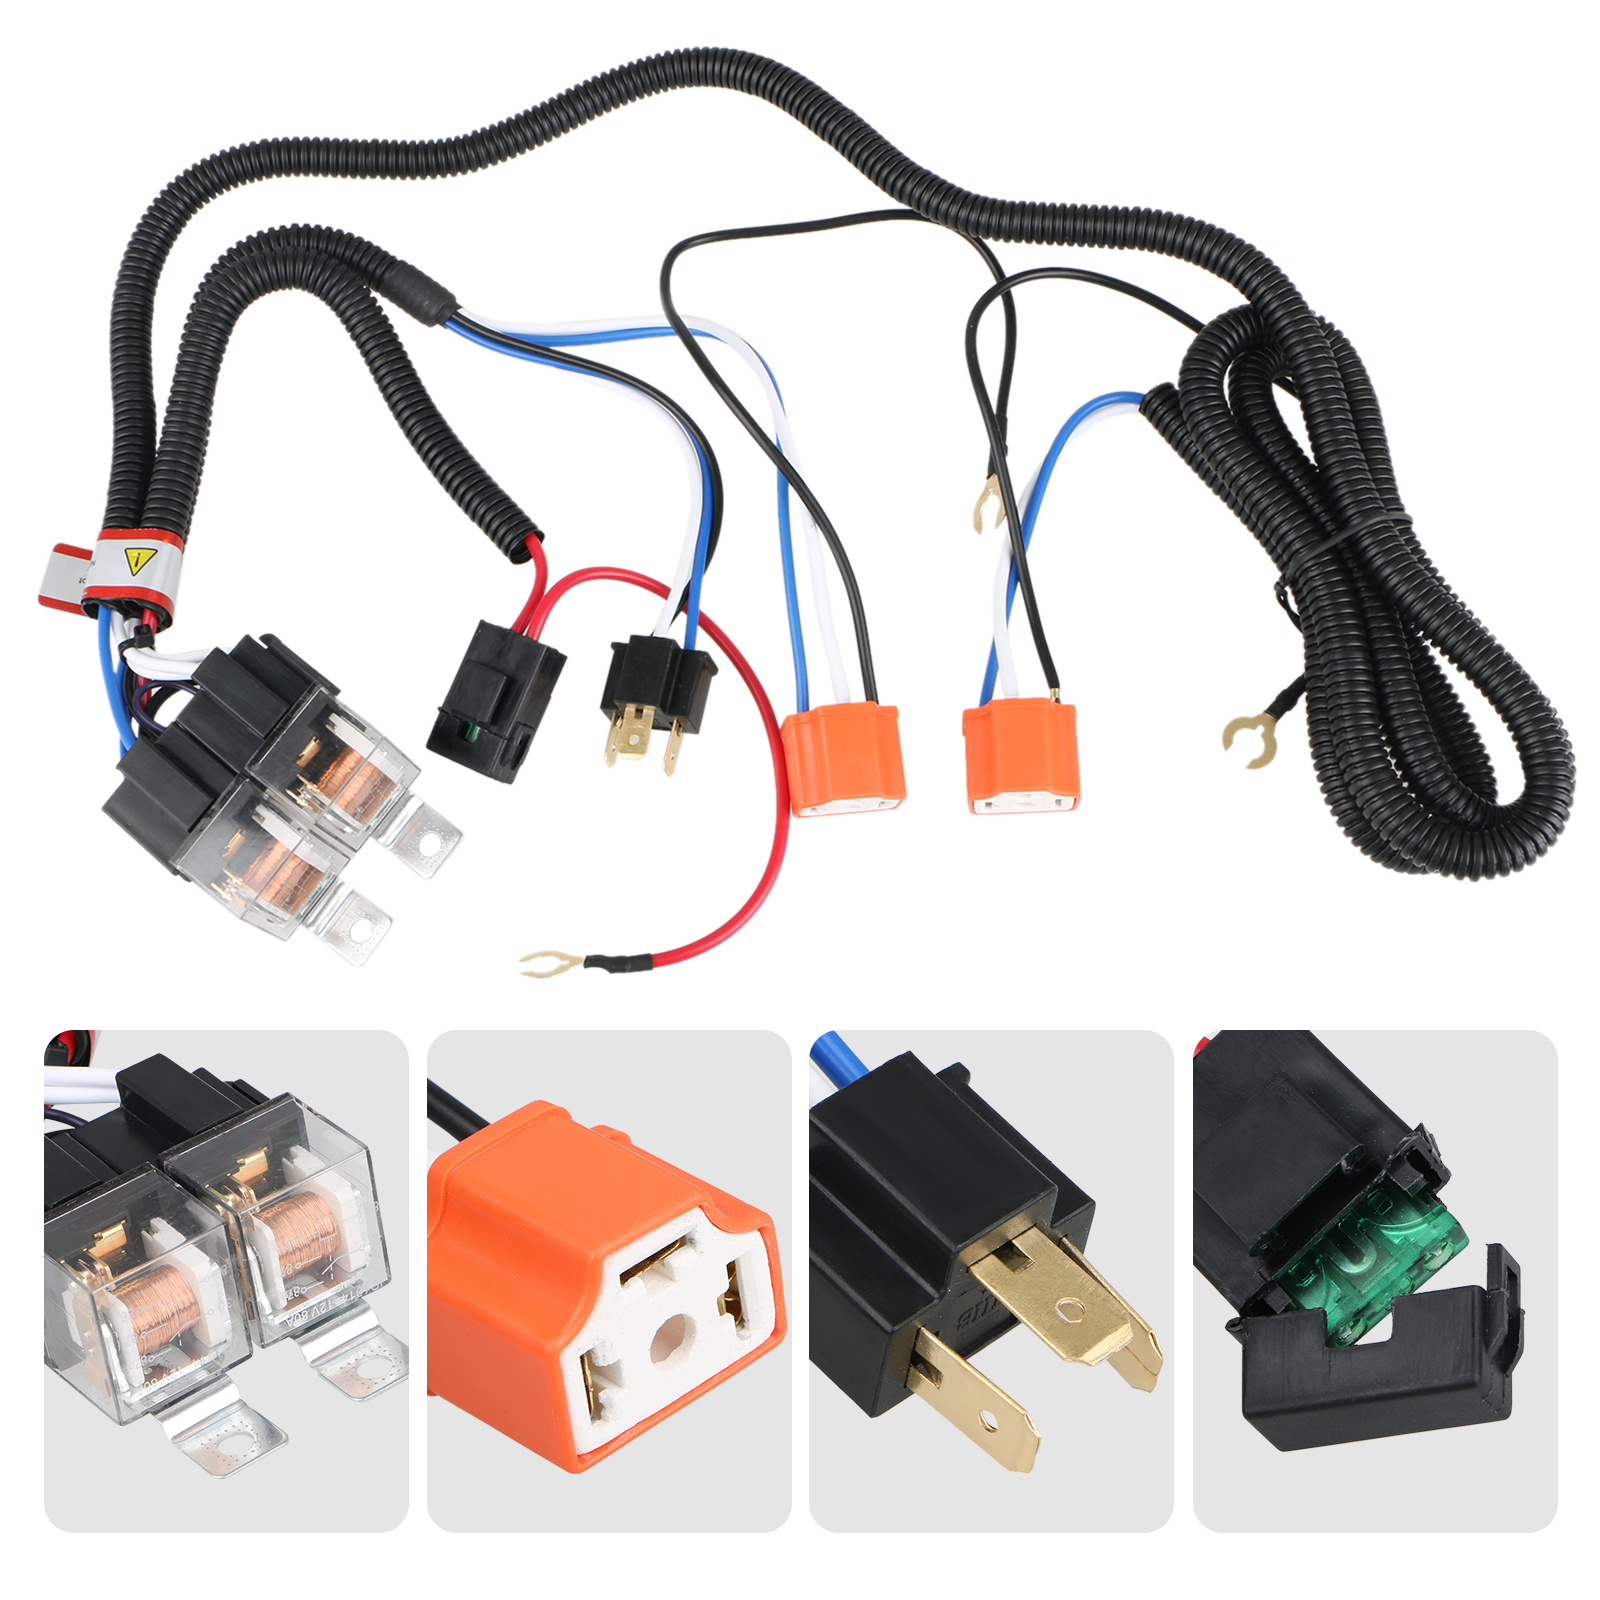 medium resolution of tsv 1set 2 headlight harness h4 headlight relay harness h6054 h4 9003 bulb wiring h4 headlight relay wiring harness